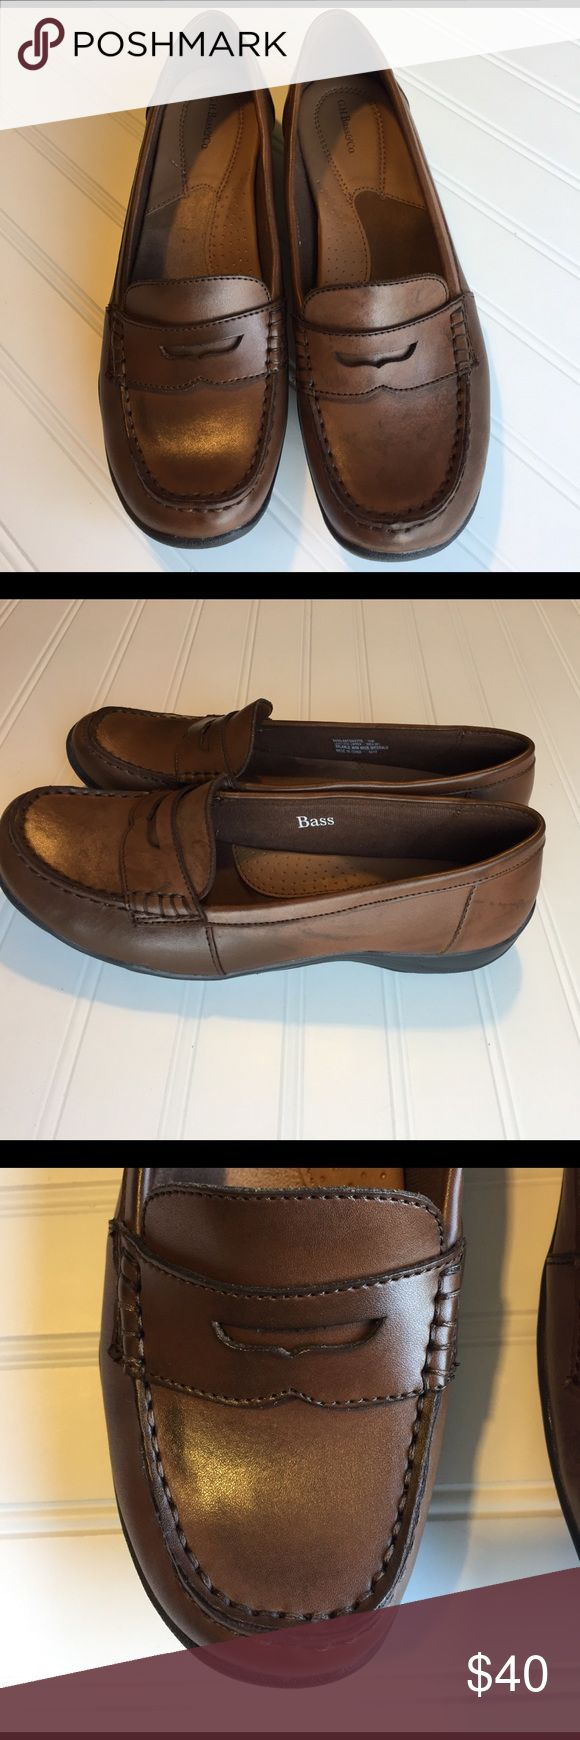 Bass Loafers Size 10 Bass Chestnut Brown Loafers.  Super Comfortable padded leather insole.  Gorgeous chestnut brown leather outer penny loafer style.  Worn once.  Like new condition.  A must have staple.  Can be worn with so many outfits.  Size 10 G.H. Bass Shoes Flats & Loafers